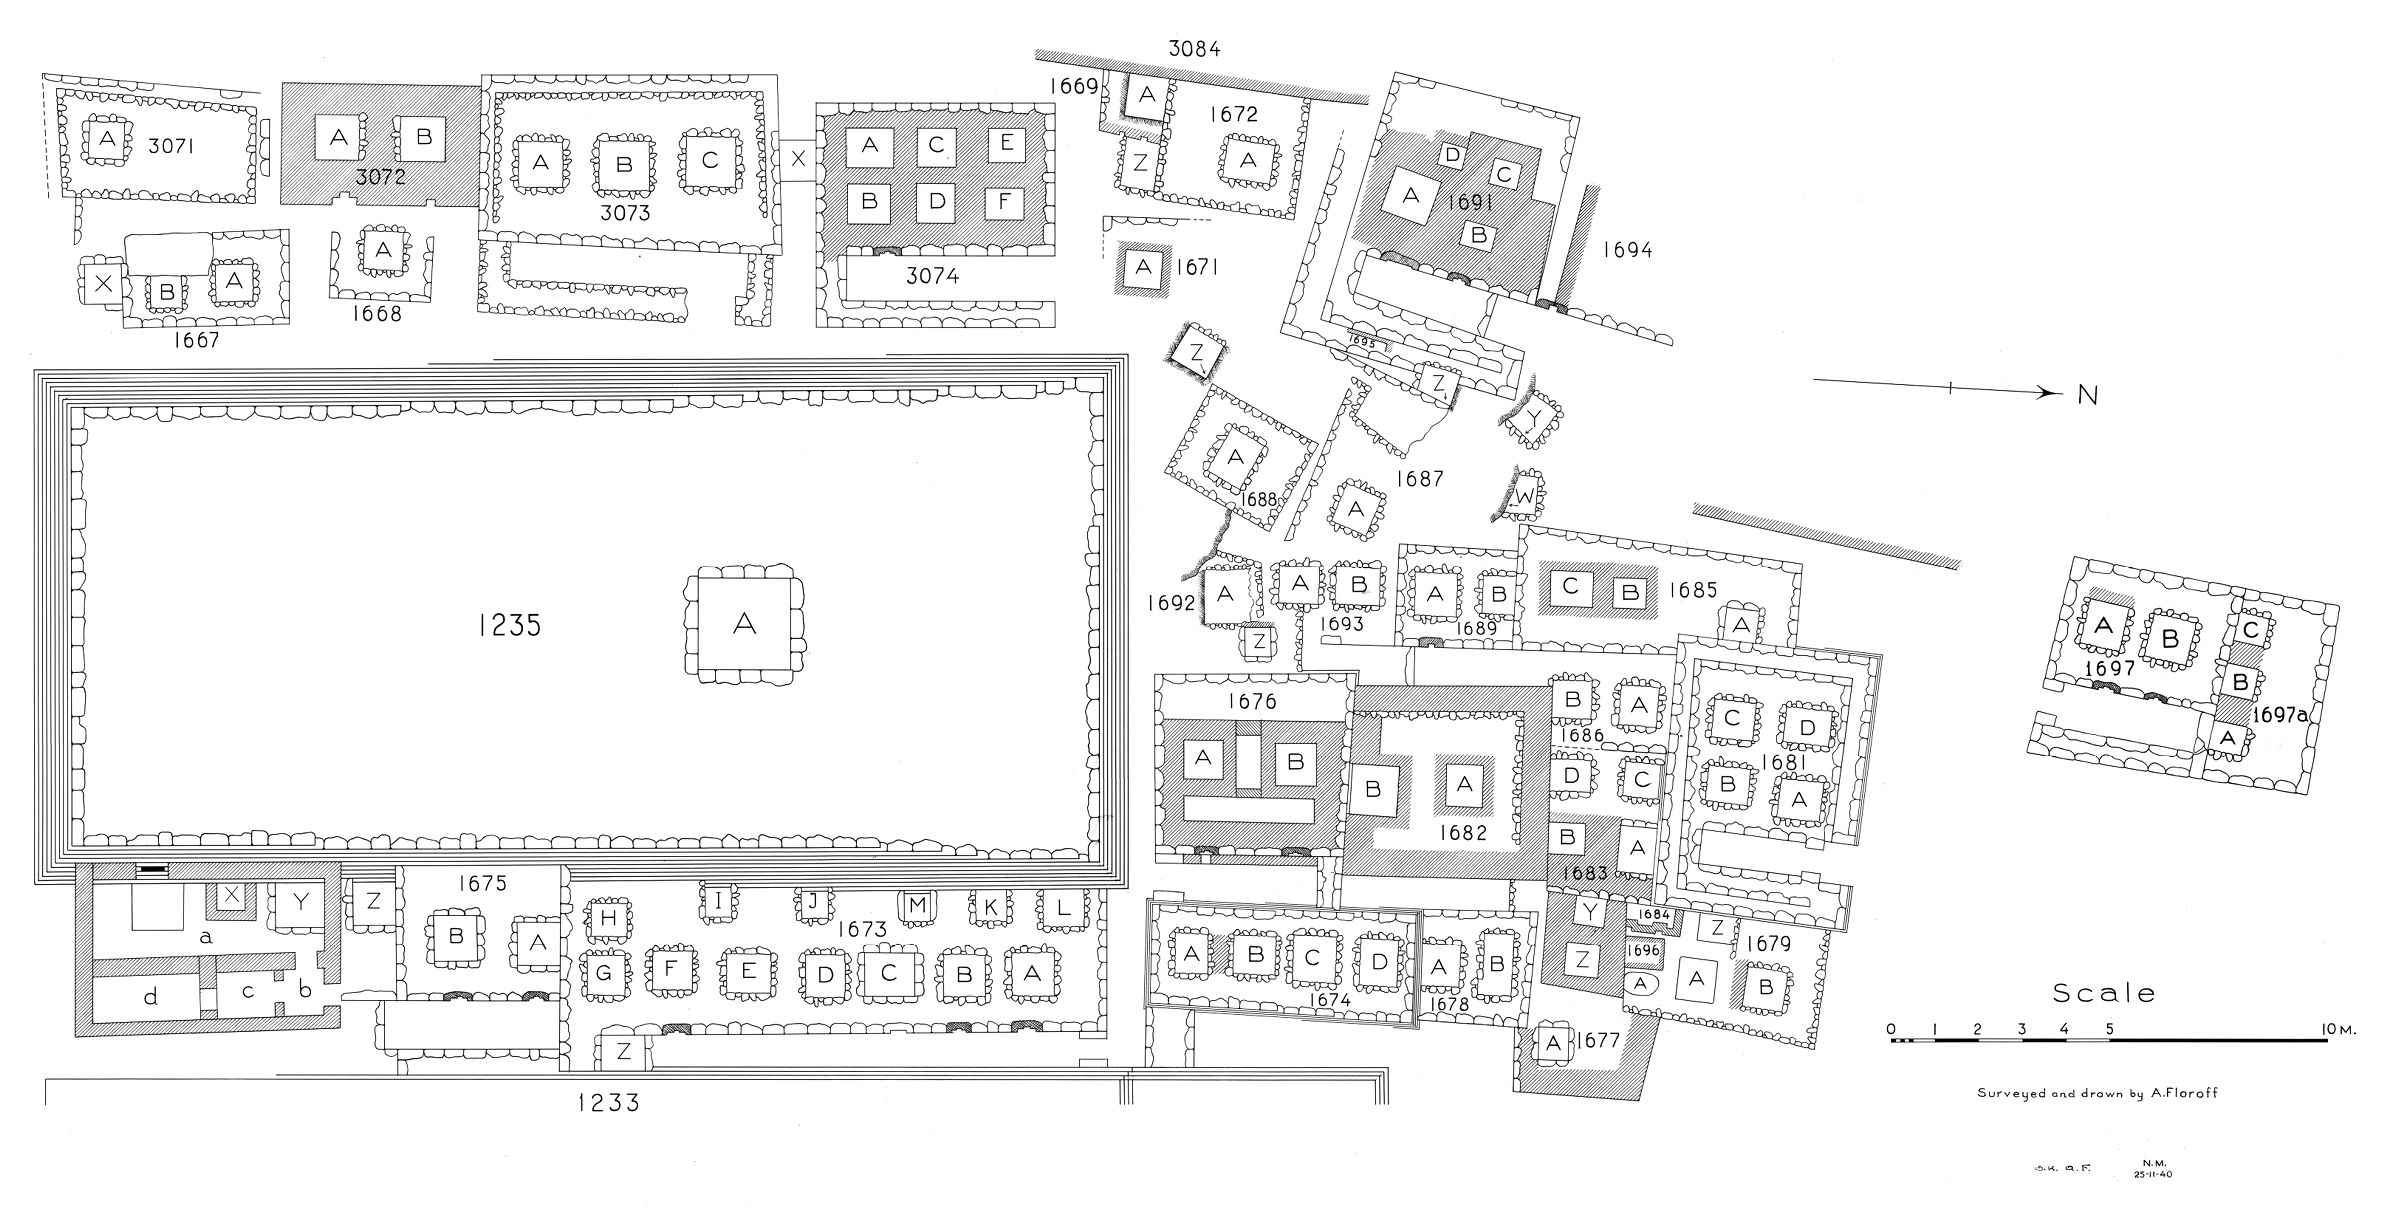 Maps and plans: Plan of cemetery G 1600 (S portion), G 1235, G 1669 - G 1697, G 3071 - G 3074